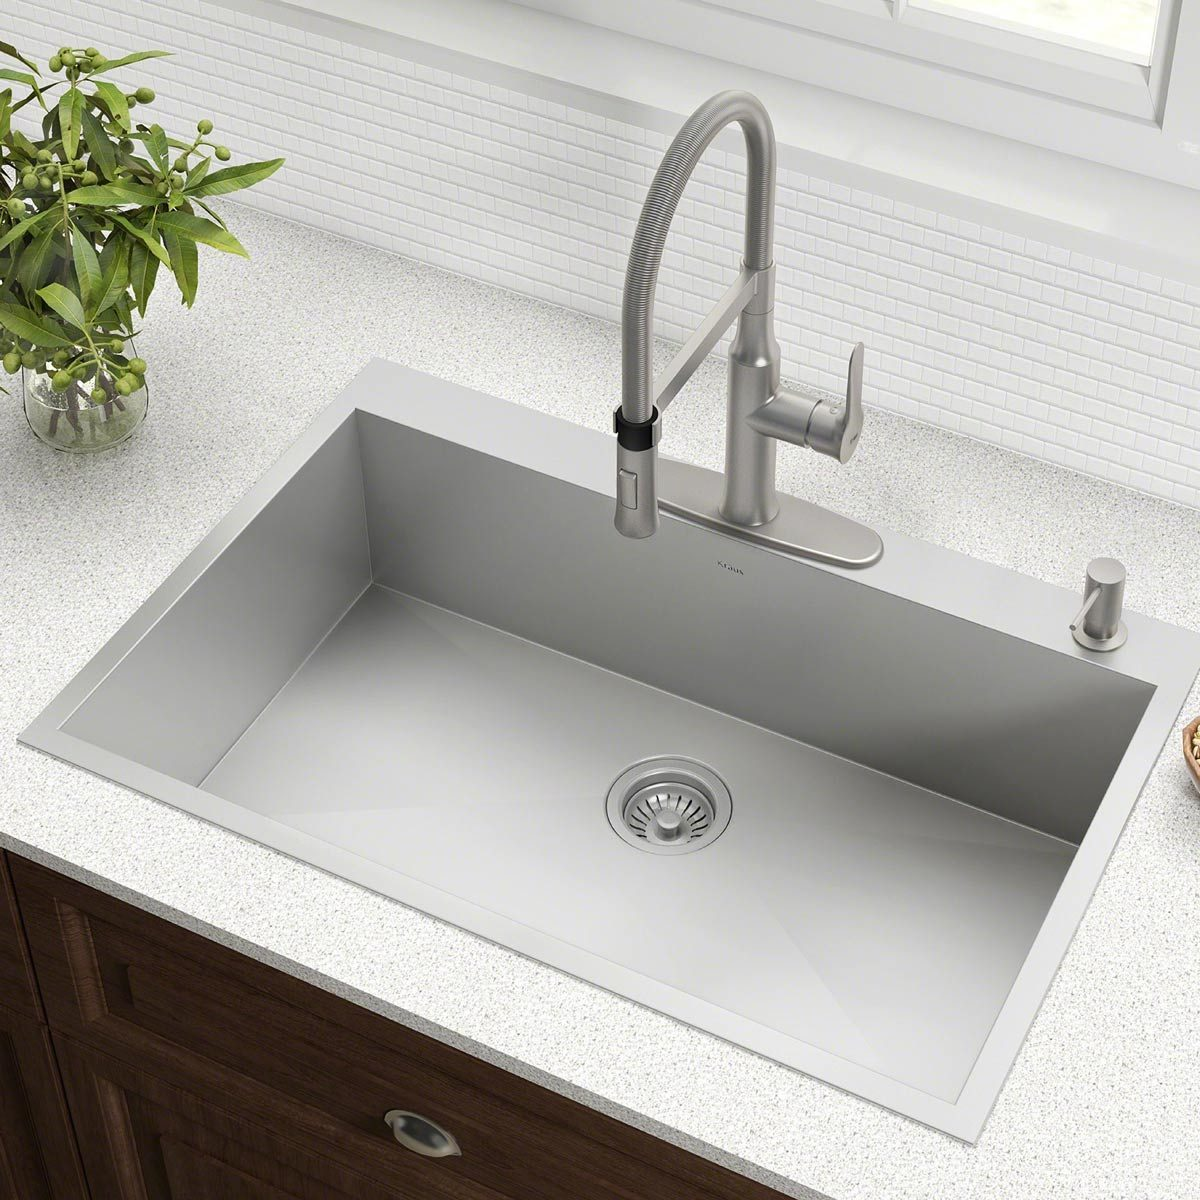 drop-in-sink kitchen